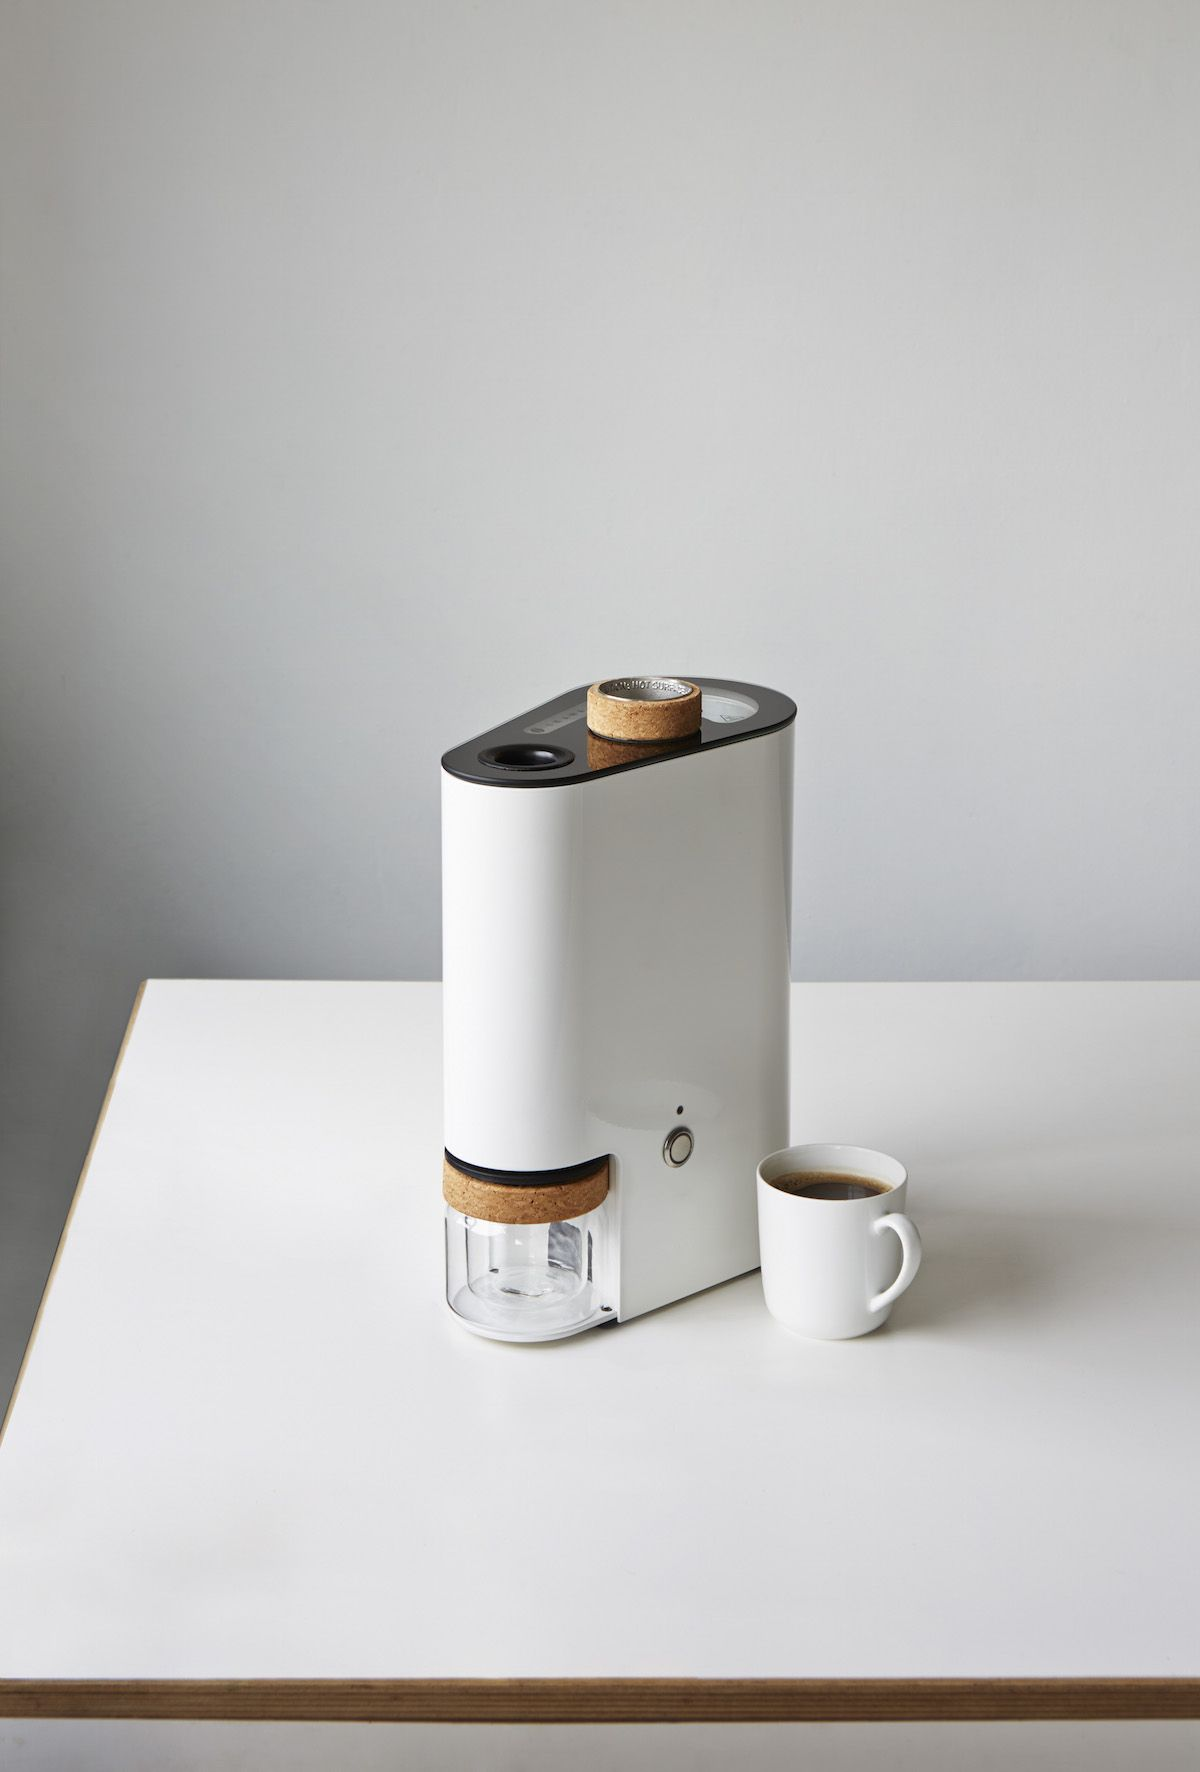 Ikawa minimalist coffee and designers for Innovative industrial design products